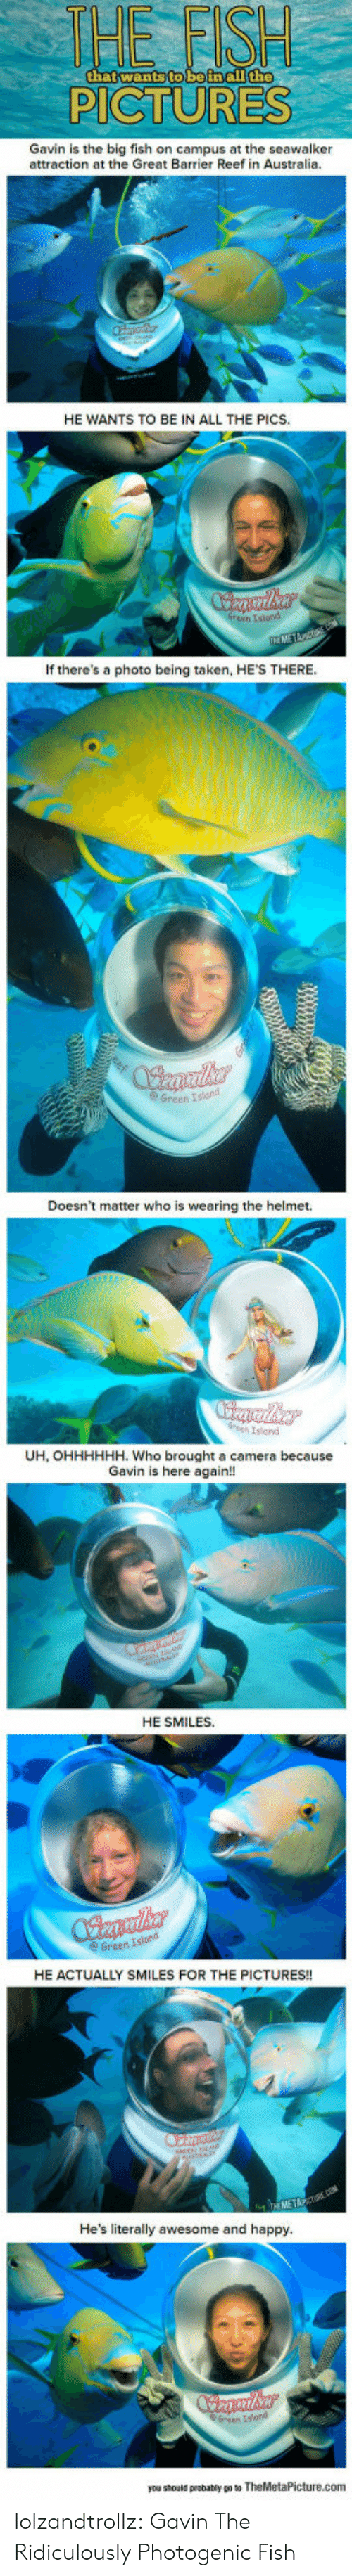 Taken, Tumblr, and Australia: HE FST  the  thatwantsto beinallt  PICTURES  Gavin is the big fish on campus at the seawalker  attraction at the Great Barrier Reef in Australia.  HE WANTS TO BE IN ALL THE PICS.  tsiond  If there's a photo being taken, HE'S THERE  e Green Islond  Doesn't matter who is wearing the helmet.  Island  UH, OHHHHHH. Who brought a camera because  Gavin is here again!!  HE SMILES.  Green  HE ACTUALLY SMILES FOR THE PICTURES!!  He's literally awesome and happy  you shoald peobably po to lolzandtrollz:  Gavin The Ridiculously Photogenic Fish